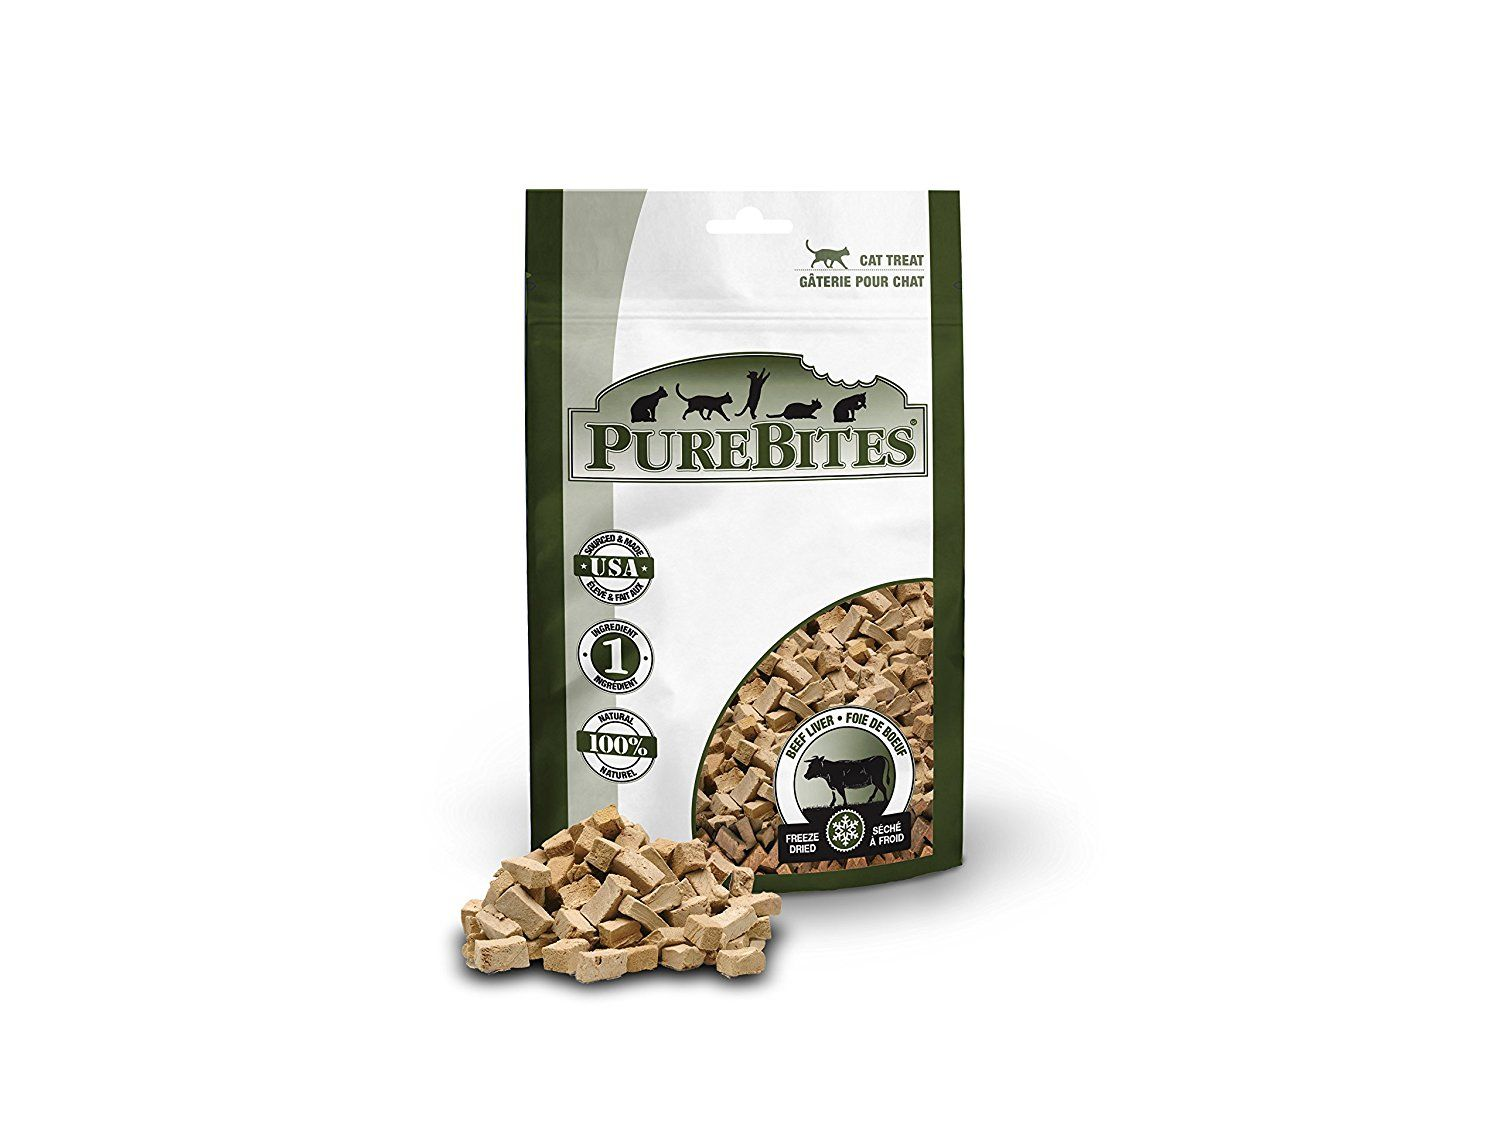 Purebites beef liver for cats 085oz 24g entry size